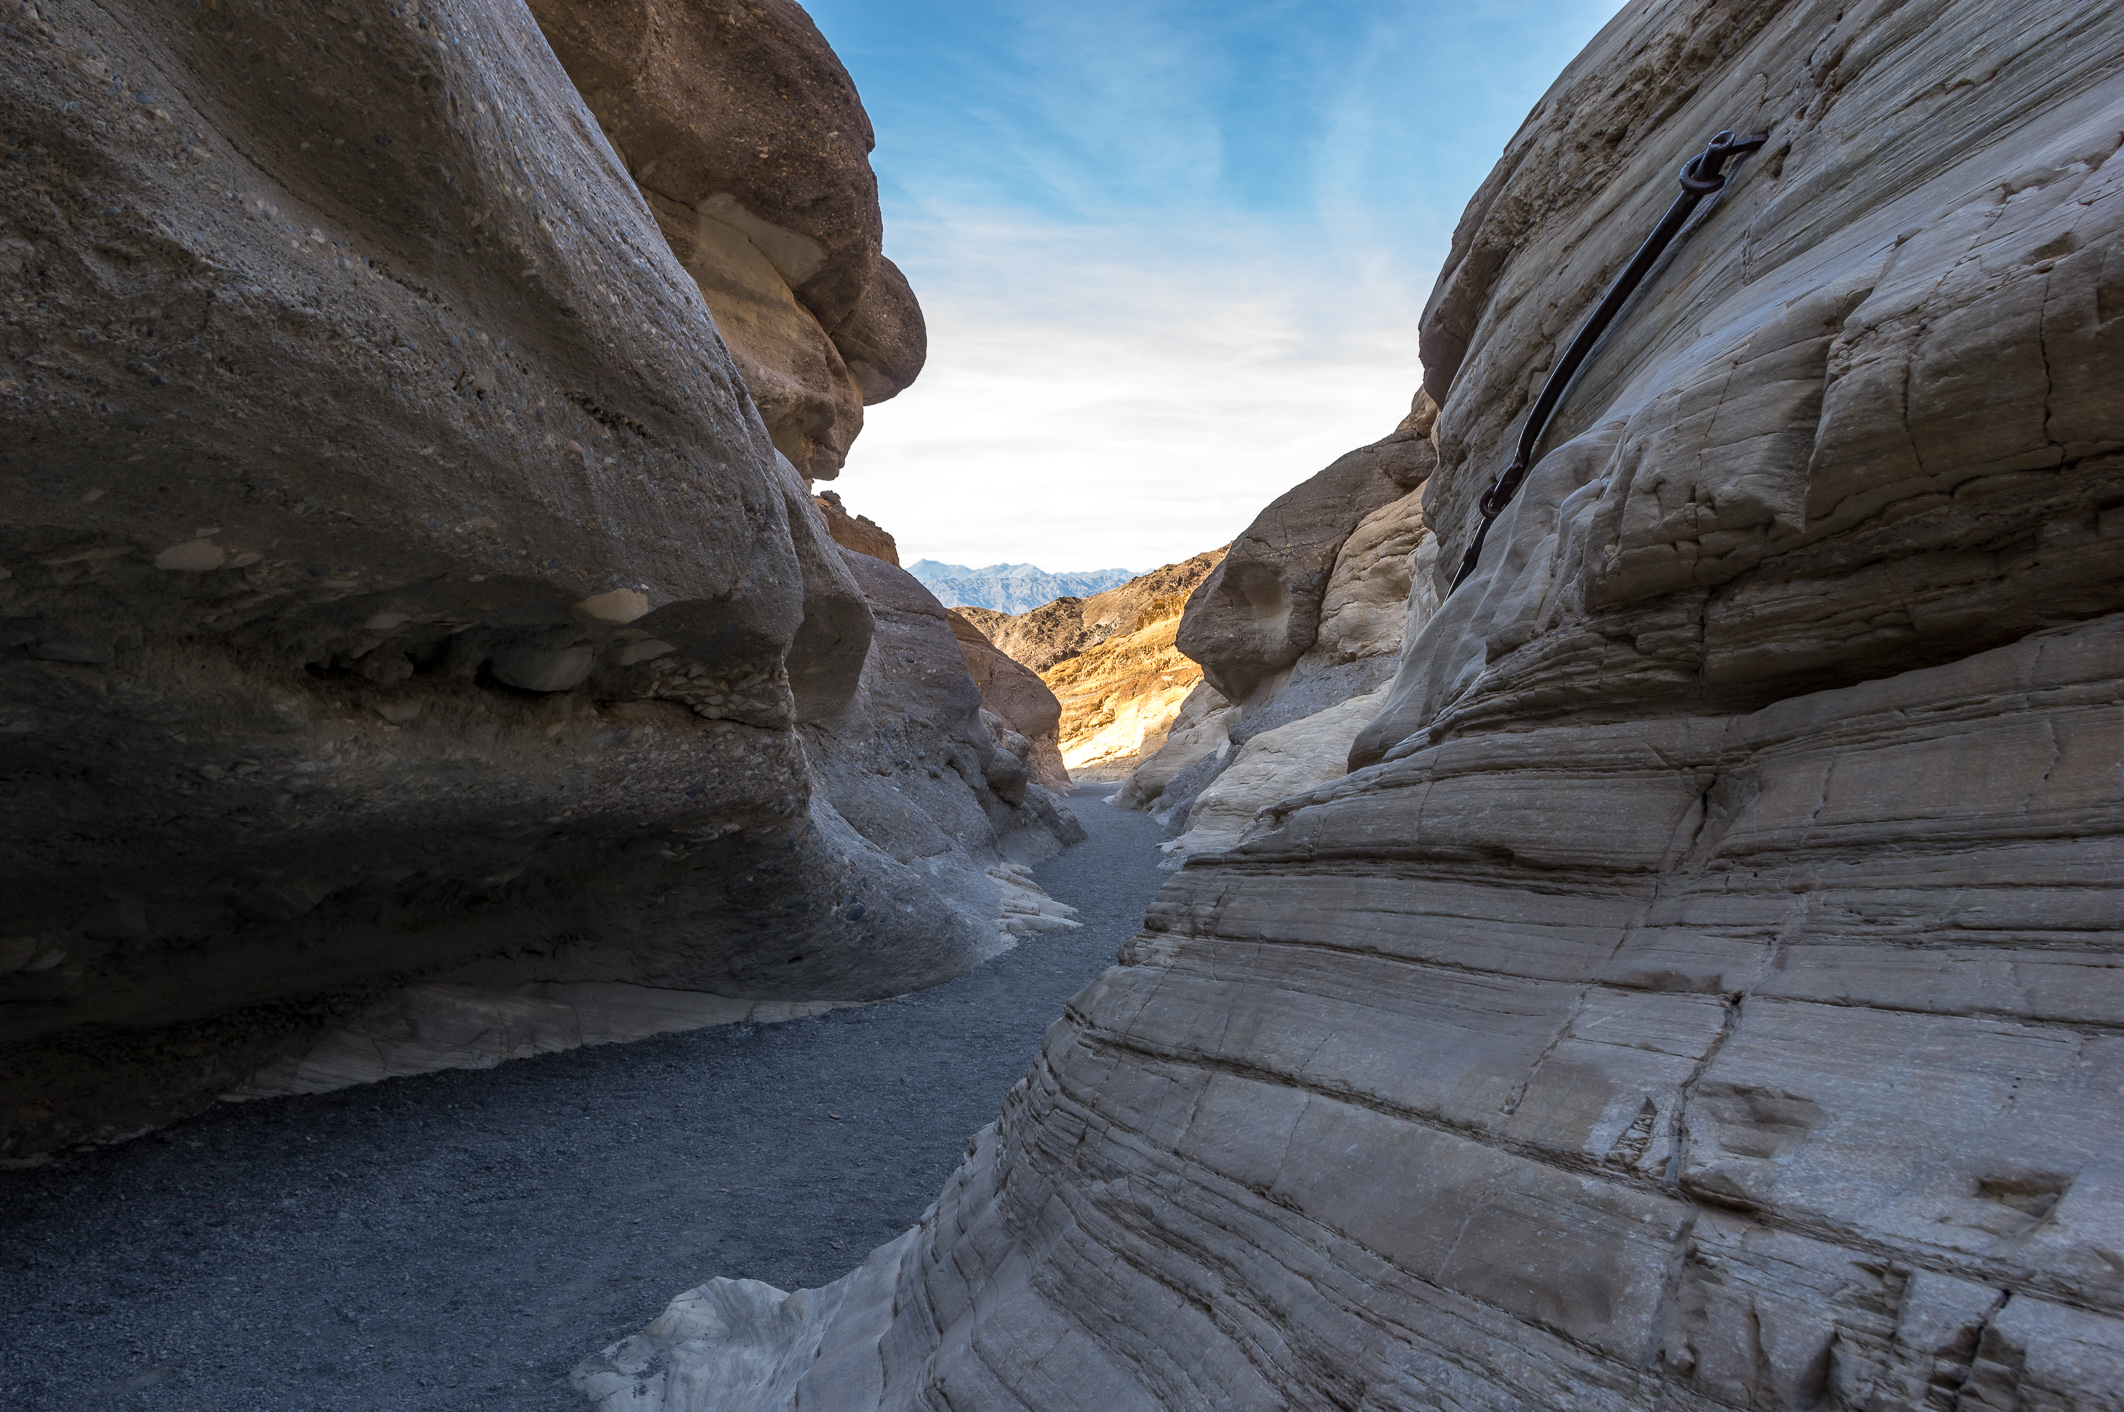 Der Mosaic Canyon im Death Valley.